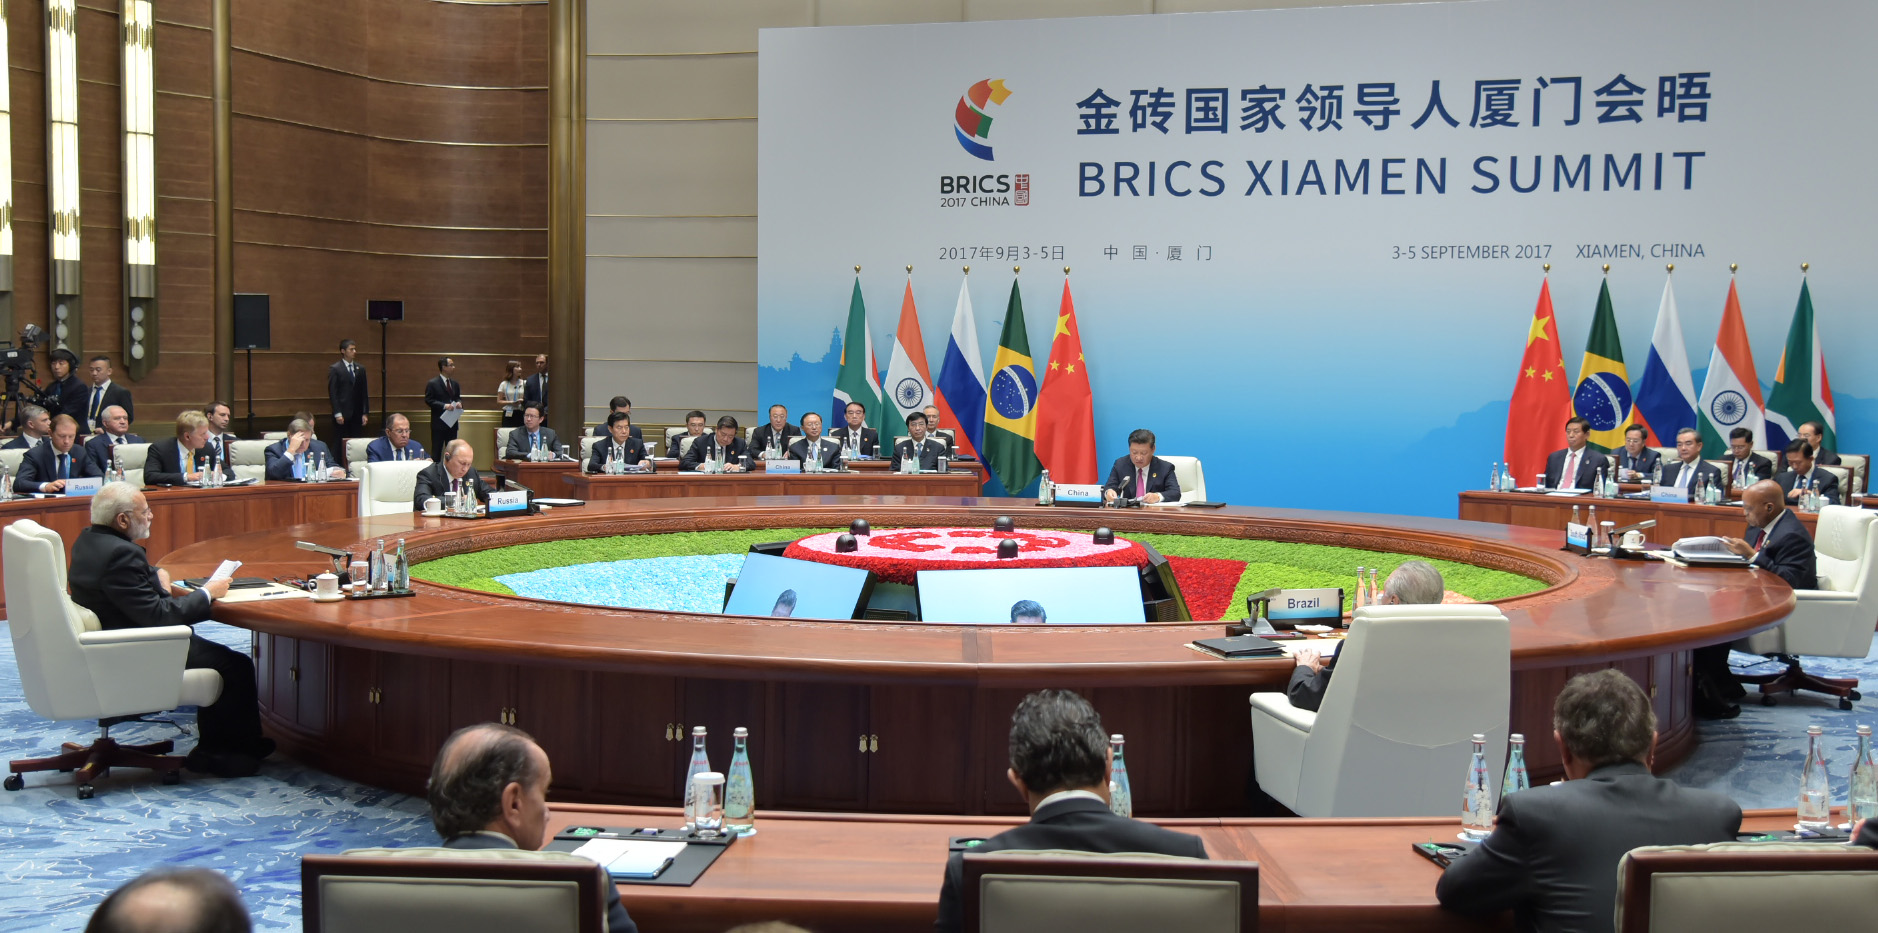 World leaders taking part in the Plenary Session of the 9th BRICS Summit, in Xiamen, China